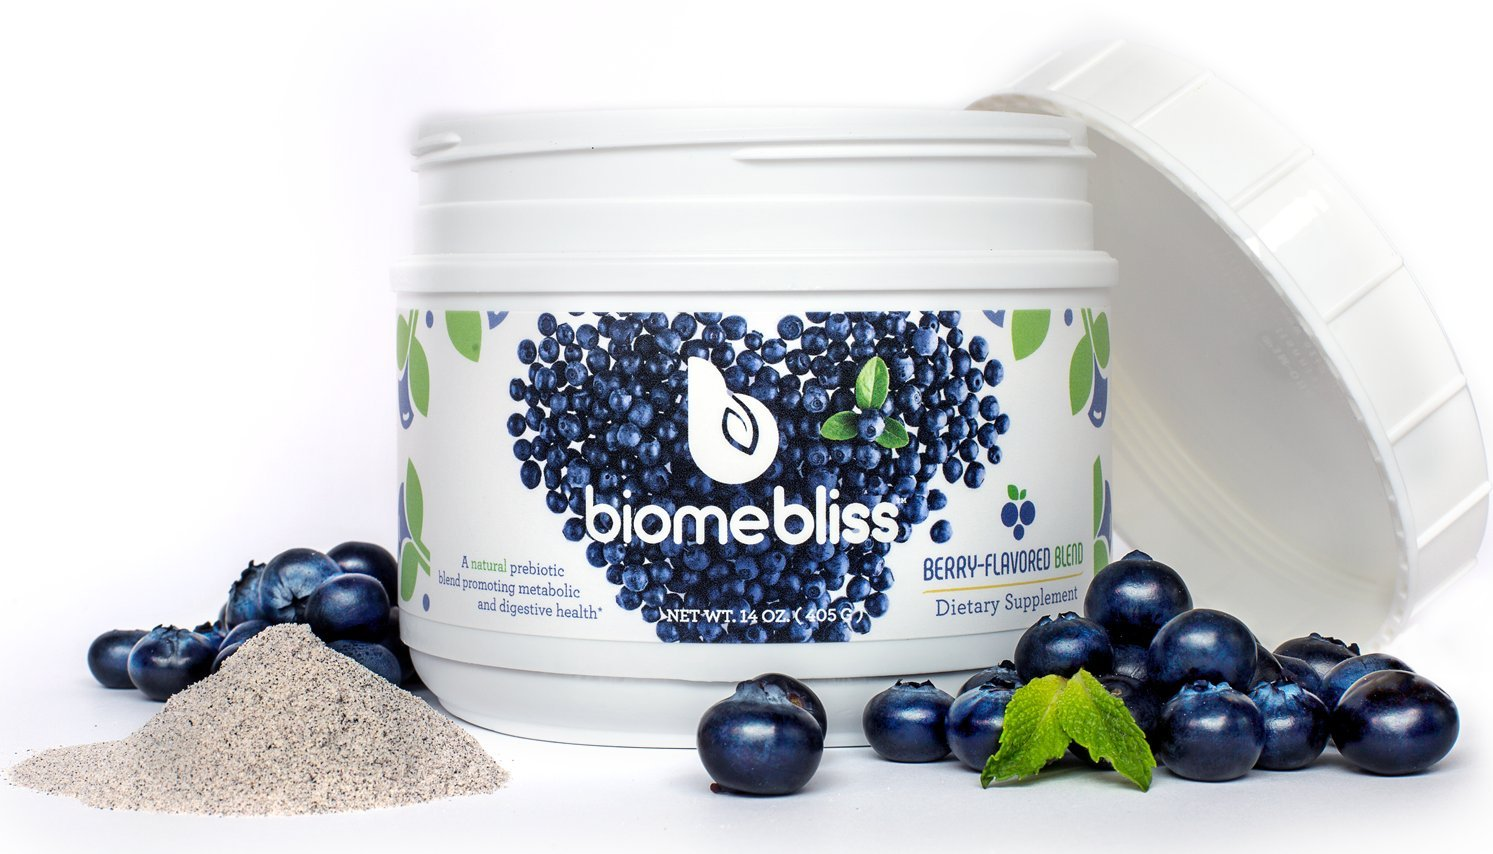 BiomeBliss Prebiotic - Clinically Tested Prebiotic Solution That Promotes: Hunger Control, Gut Health, Regularity, Blood Sugar Regulation - 405g (15 Servings)